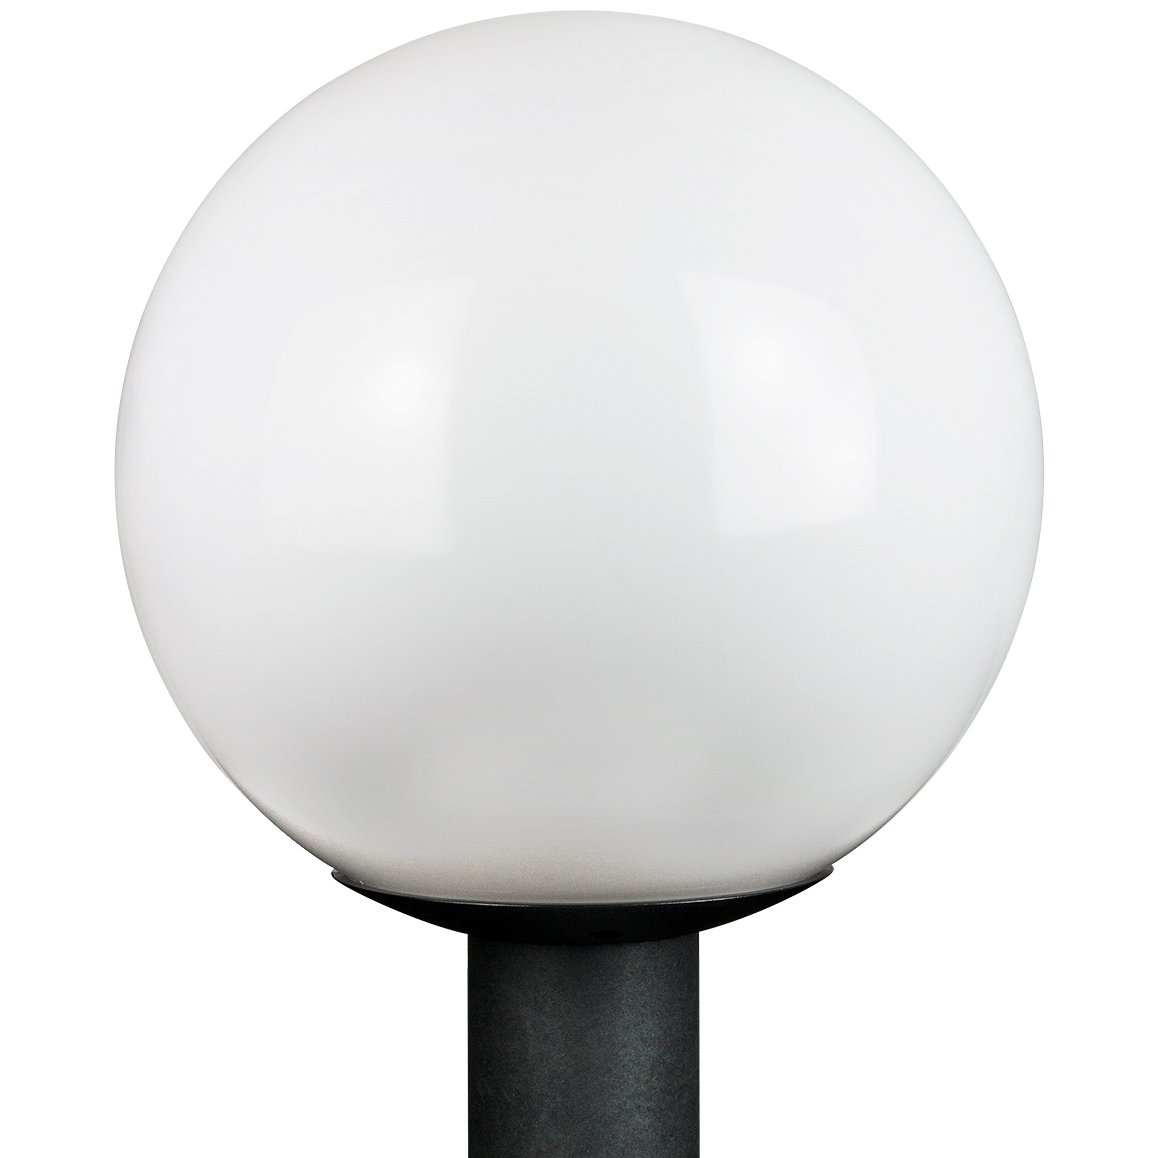 """Sunlite 47228 12"""" Decorative Outdoor Globe Polycarbonate Post Fixture, Black Finish, White Lens, 3"""" Post Mount (not included)"""